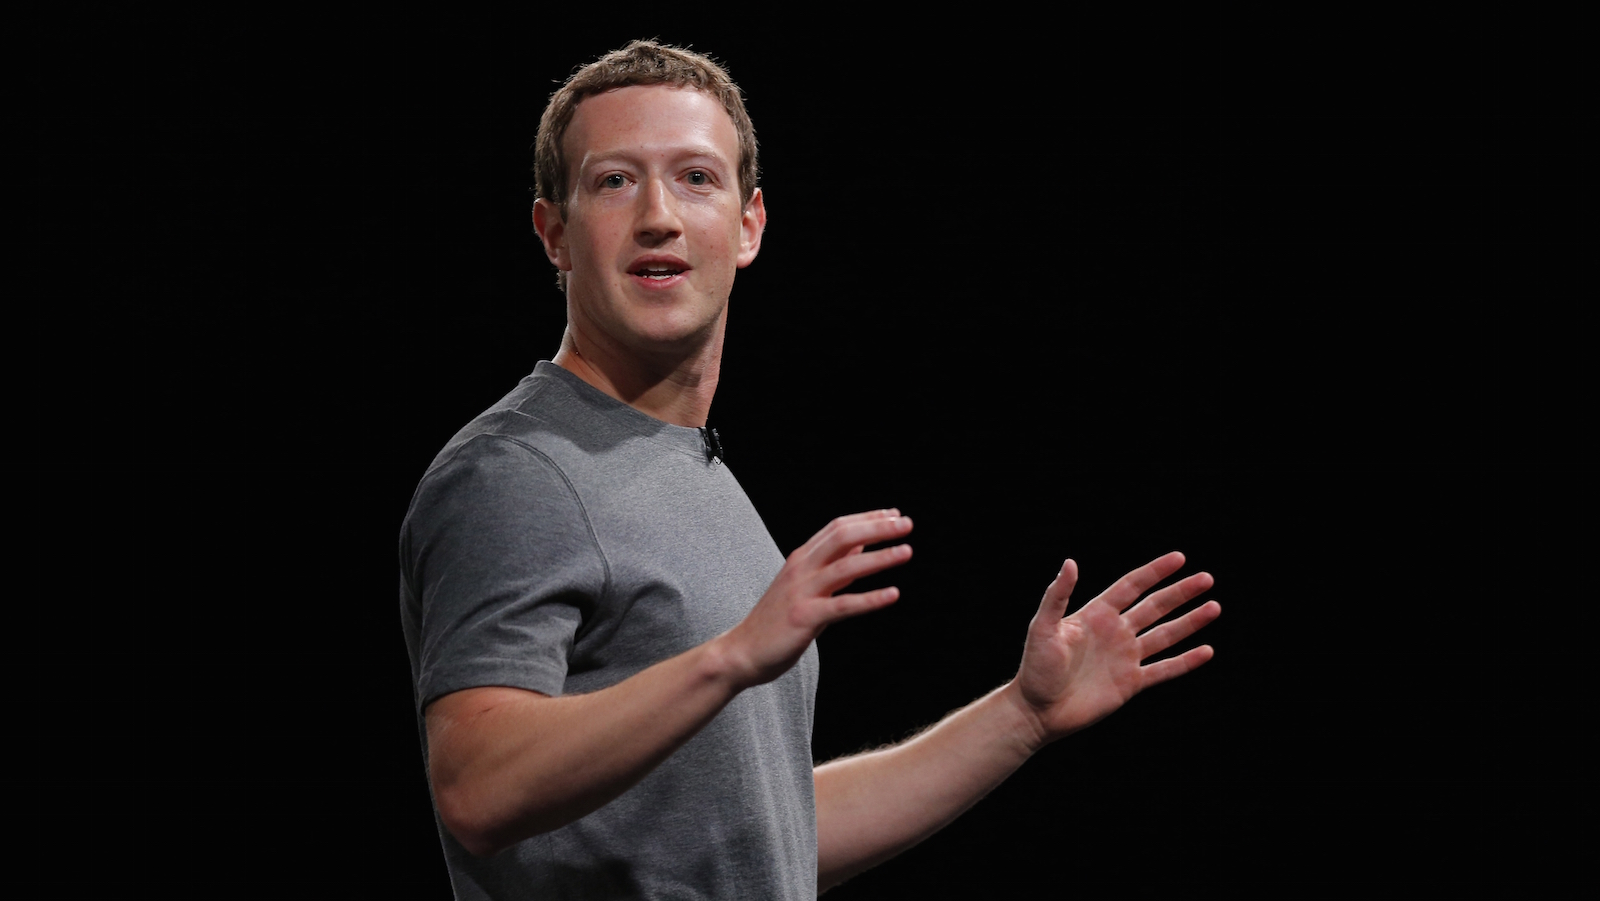 File-This Feb. 21, 2016, file photo sshows Facebook CEO Mark Zuckerberg speaking during the Samsung Galaxy Unpacked 2016 event in Barcelona, Spain. Some of Zuckerberg's neighbors are grumbling about a rock wall he's having built on his property on Kauai's north shore. Retiree Moku Crain said Tuesday, June 28, 2016, the wall looks daunting and forbidding. Crain hopes and expects Zuckerberg will soften the wall's look by planting foliage around it. The wall began going up about four to six weeks ago. It runs along the property next to a road in the semi-rural community of Kilauea. (AP Photo/Manu Fernadez, File)